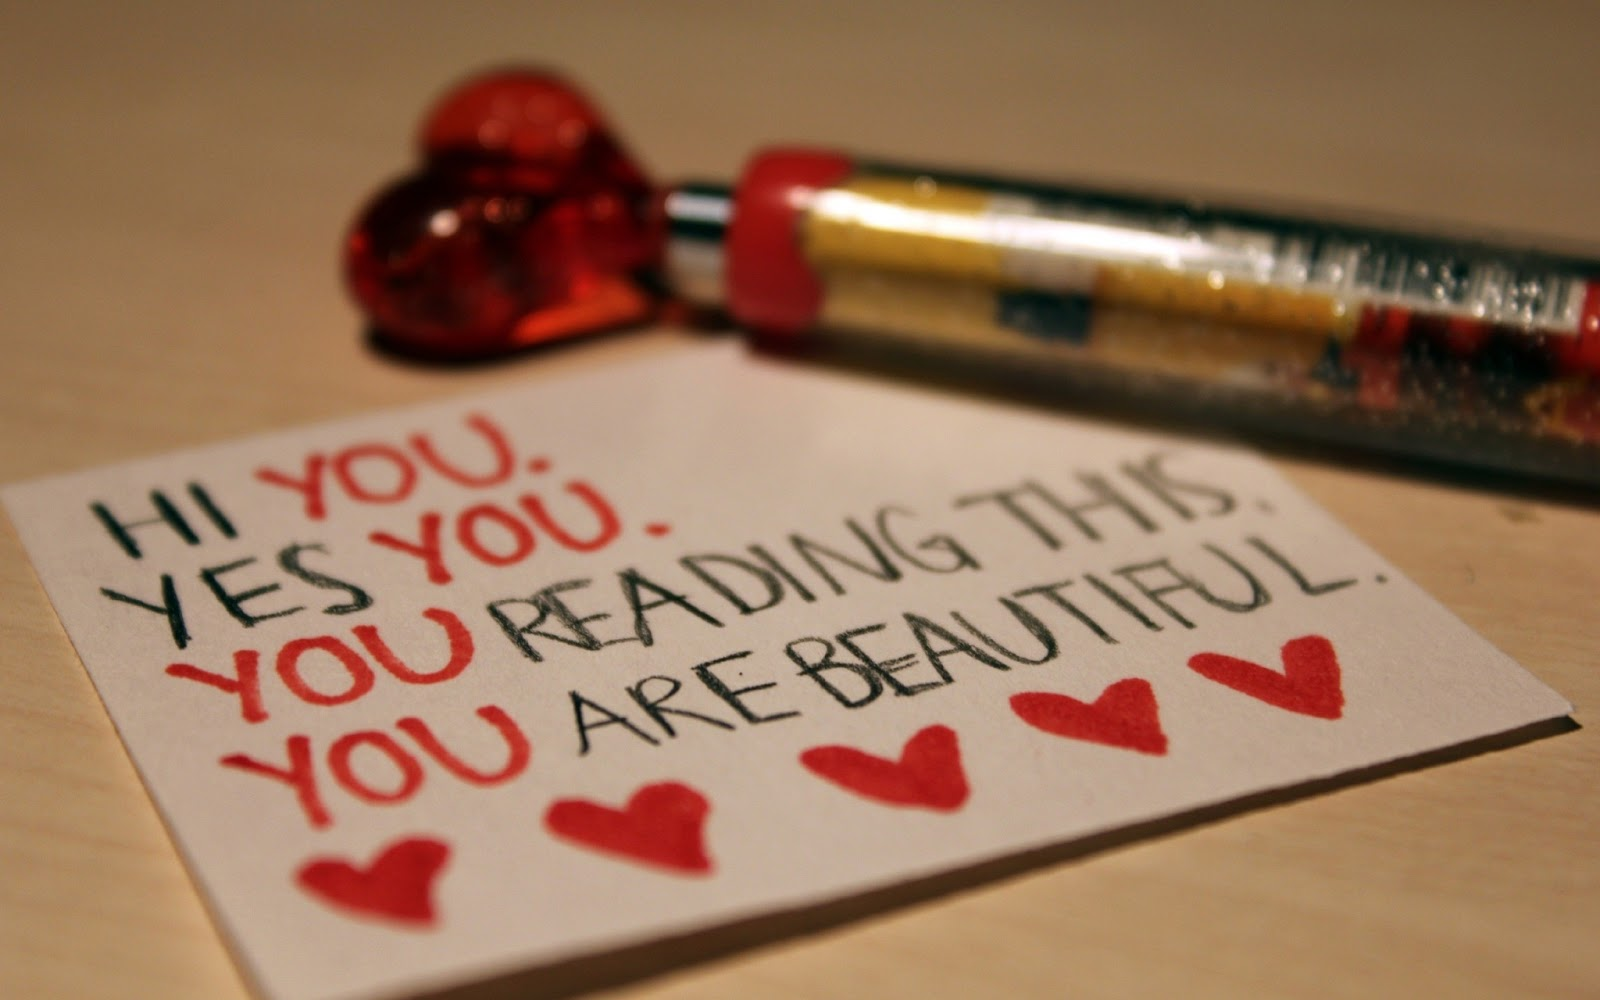 If you are reading this, you are beautiful!